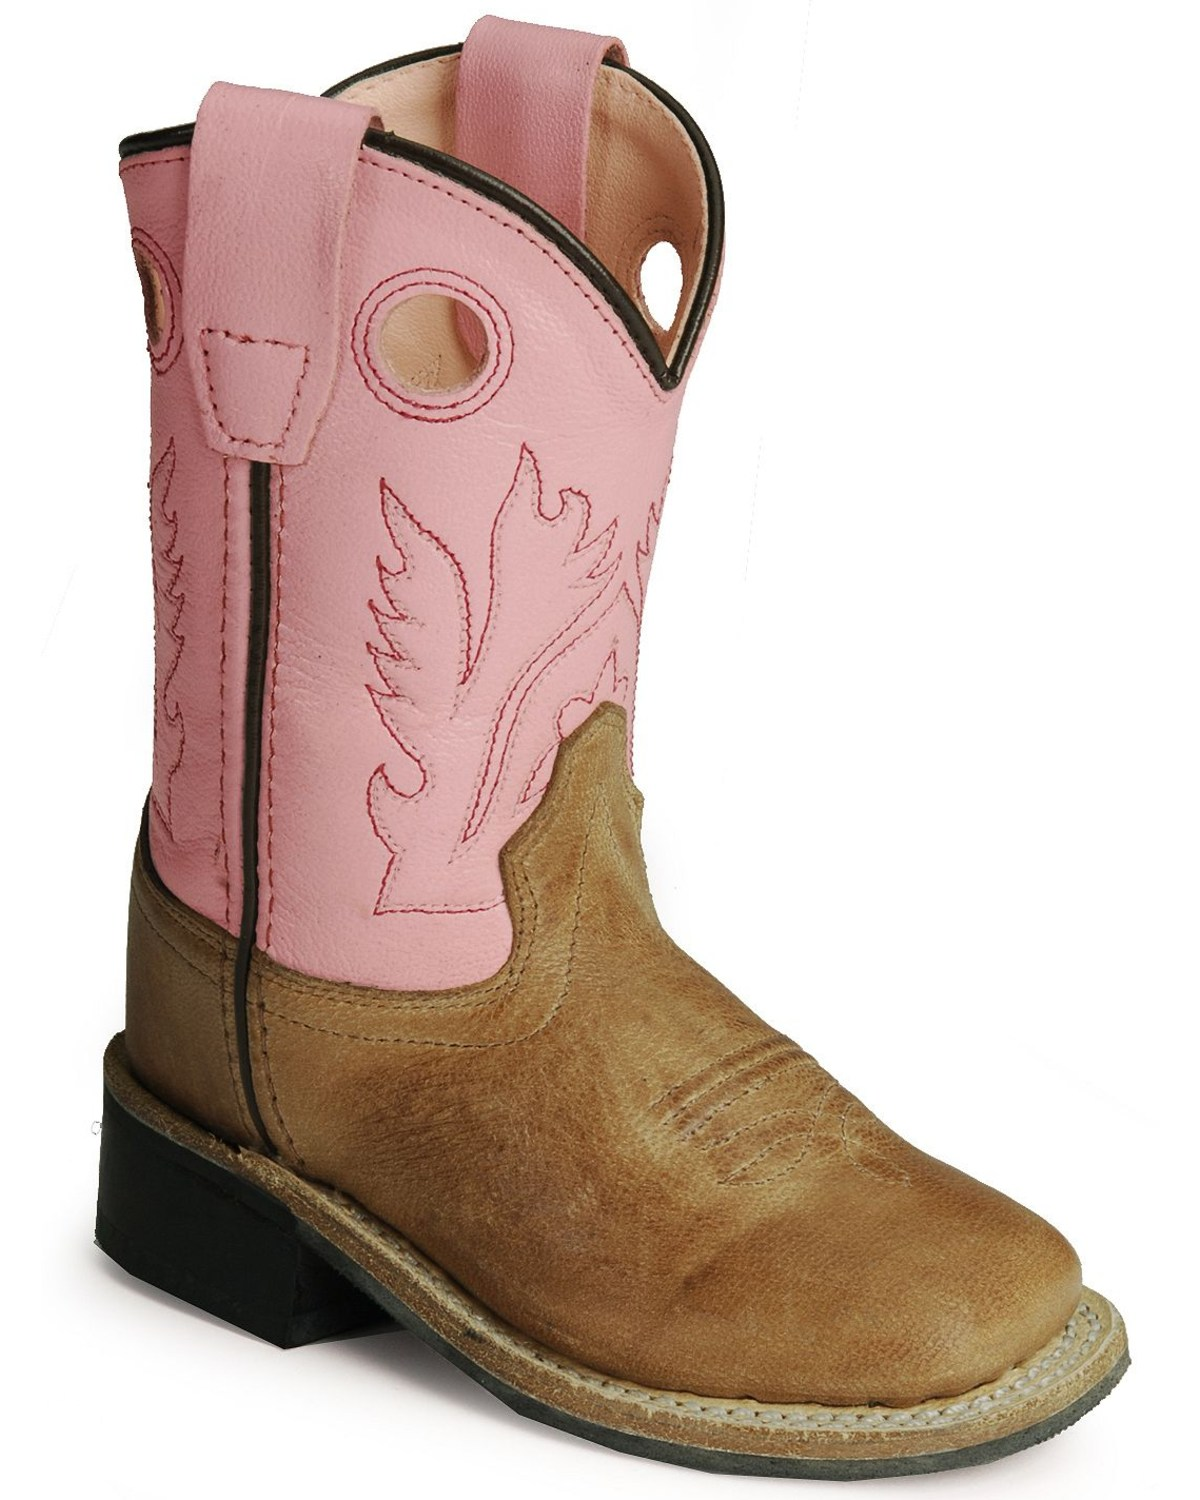 c3aa8606dad Old West Toddler Girls' Pink Cowgirl Boots - Square Toe